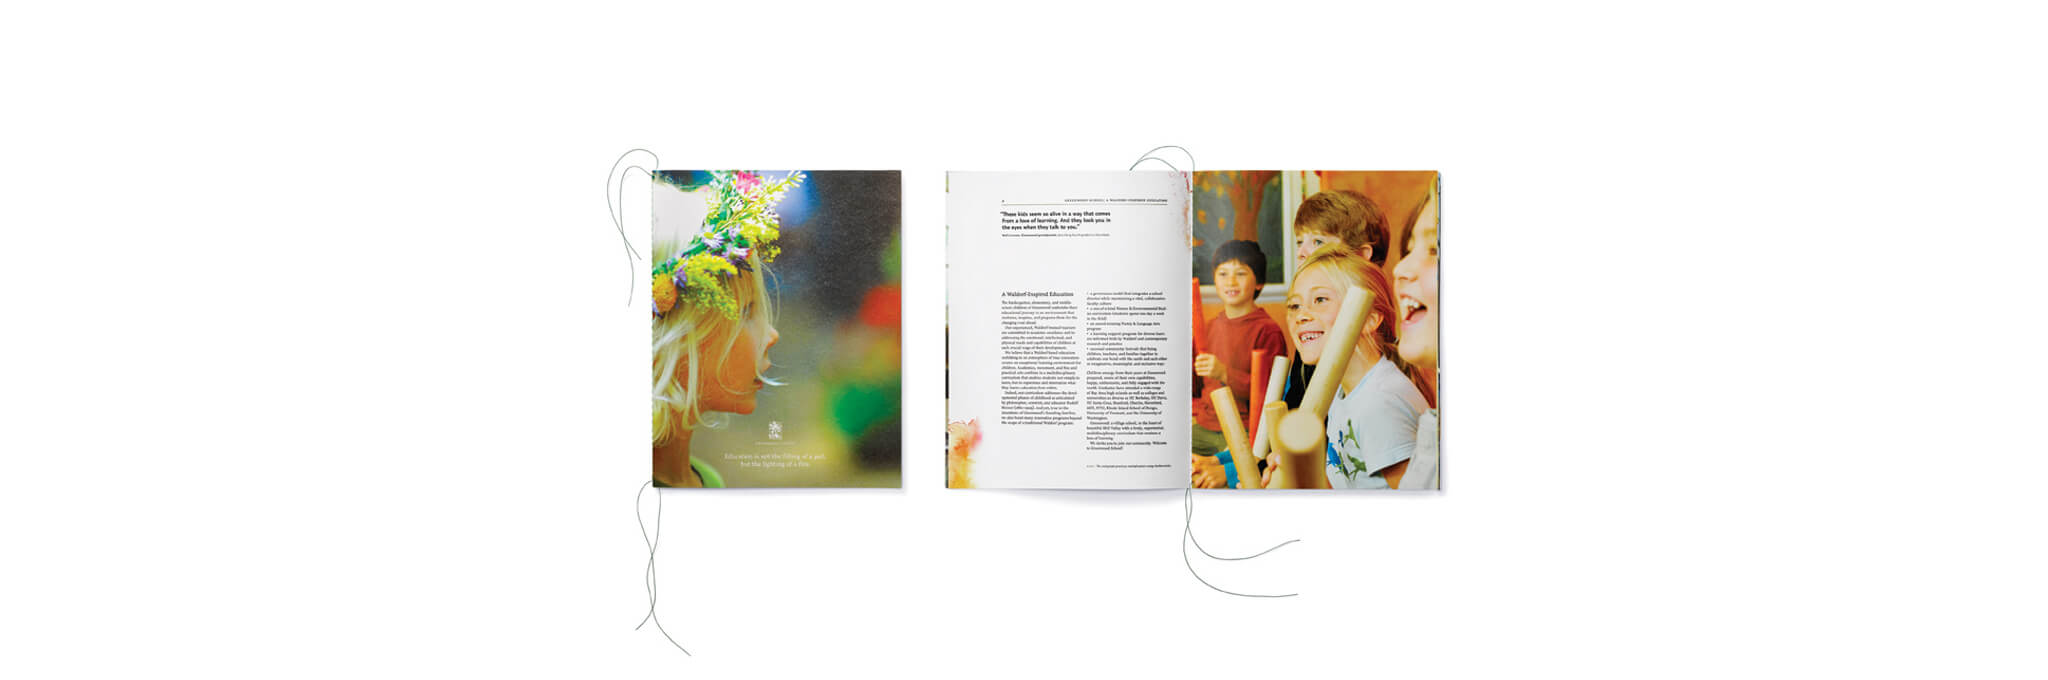 String-bound brochure cover and open interior spread showing children and text